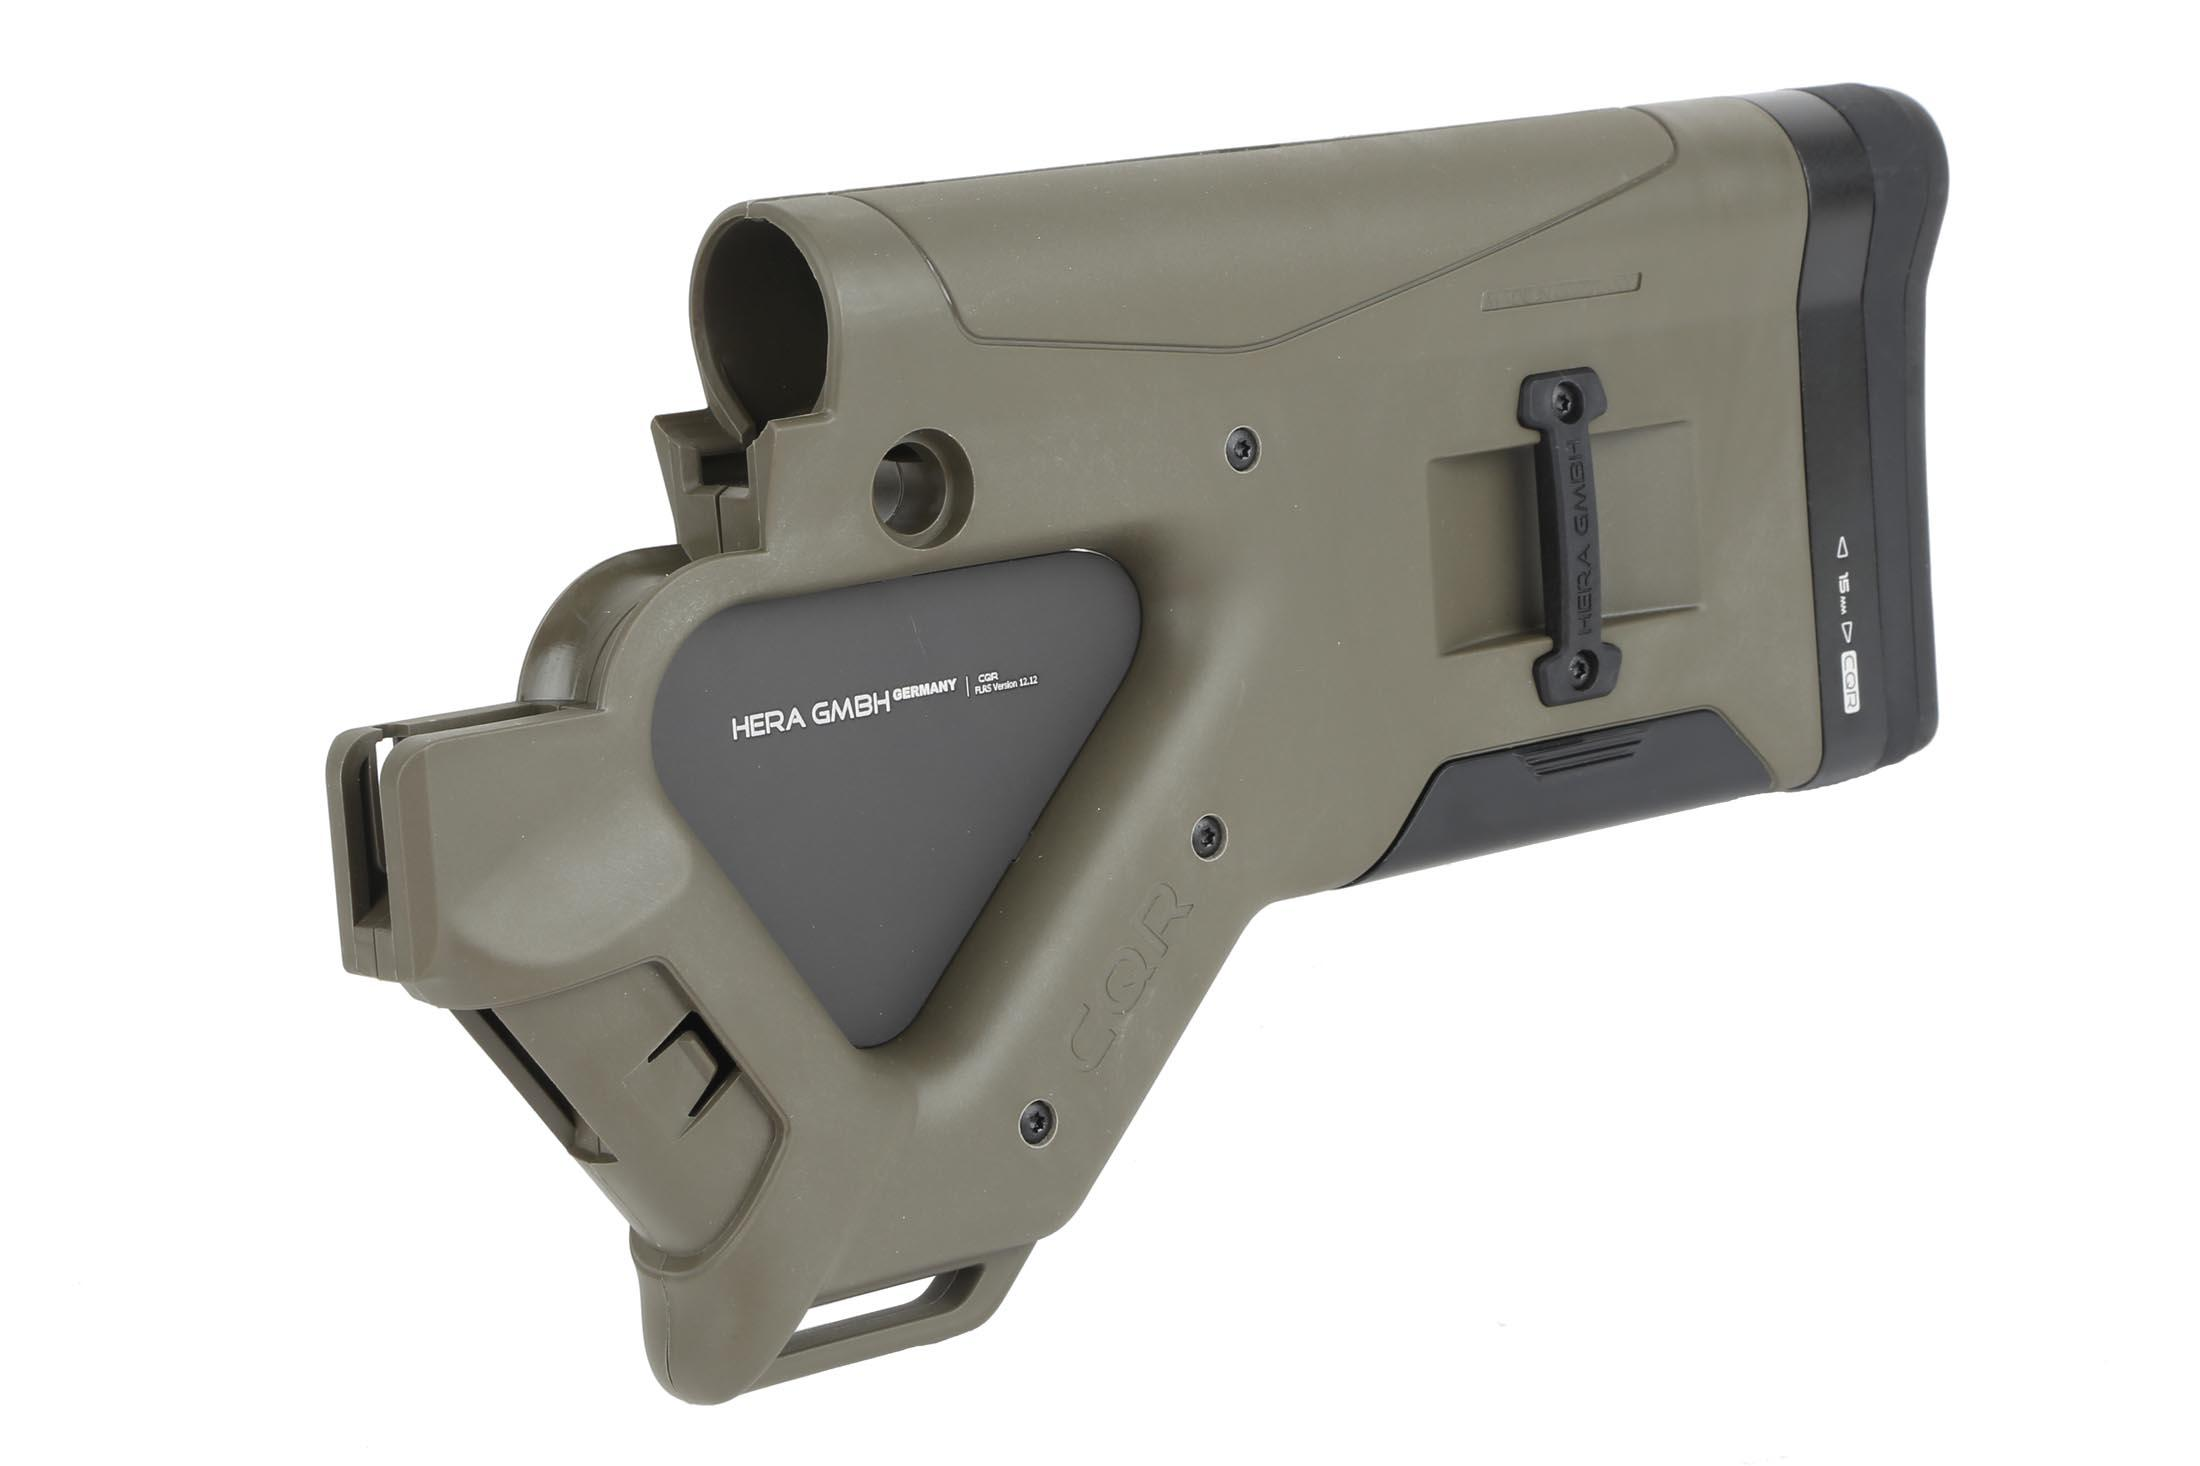 Hera Arms CQR Featureless Buttstock - Olive Drab Green